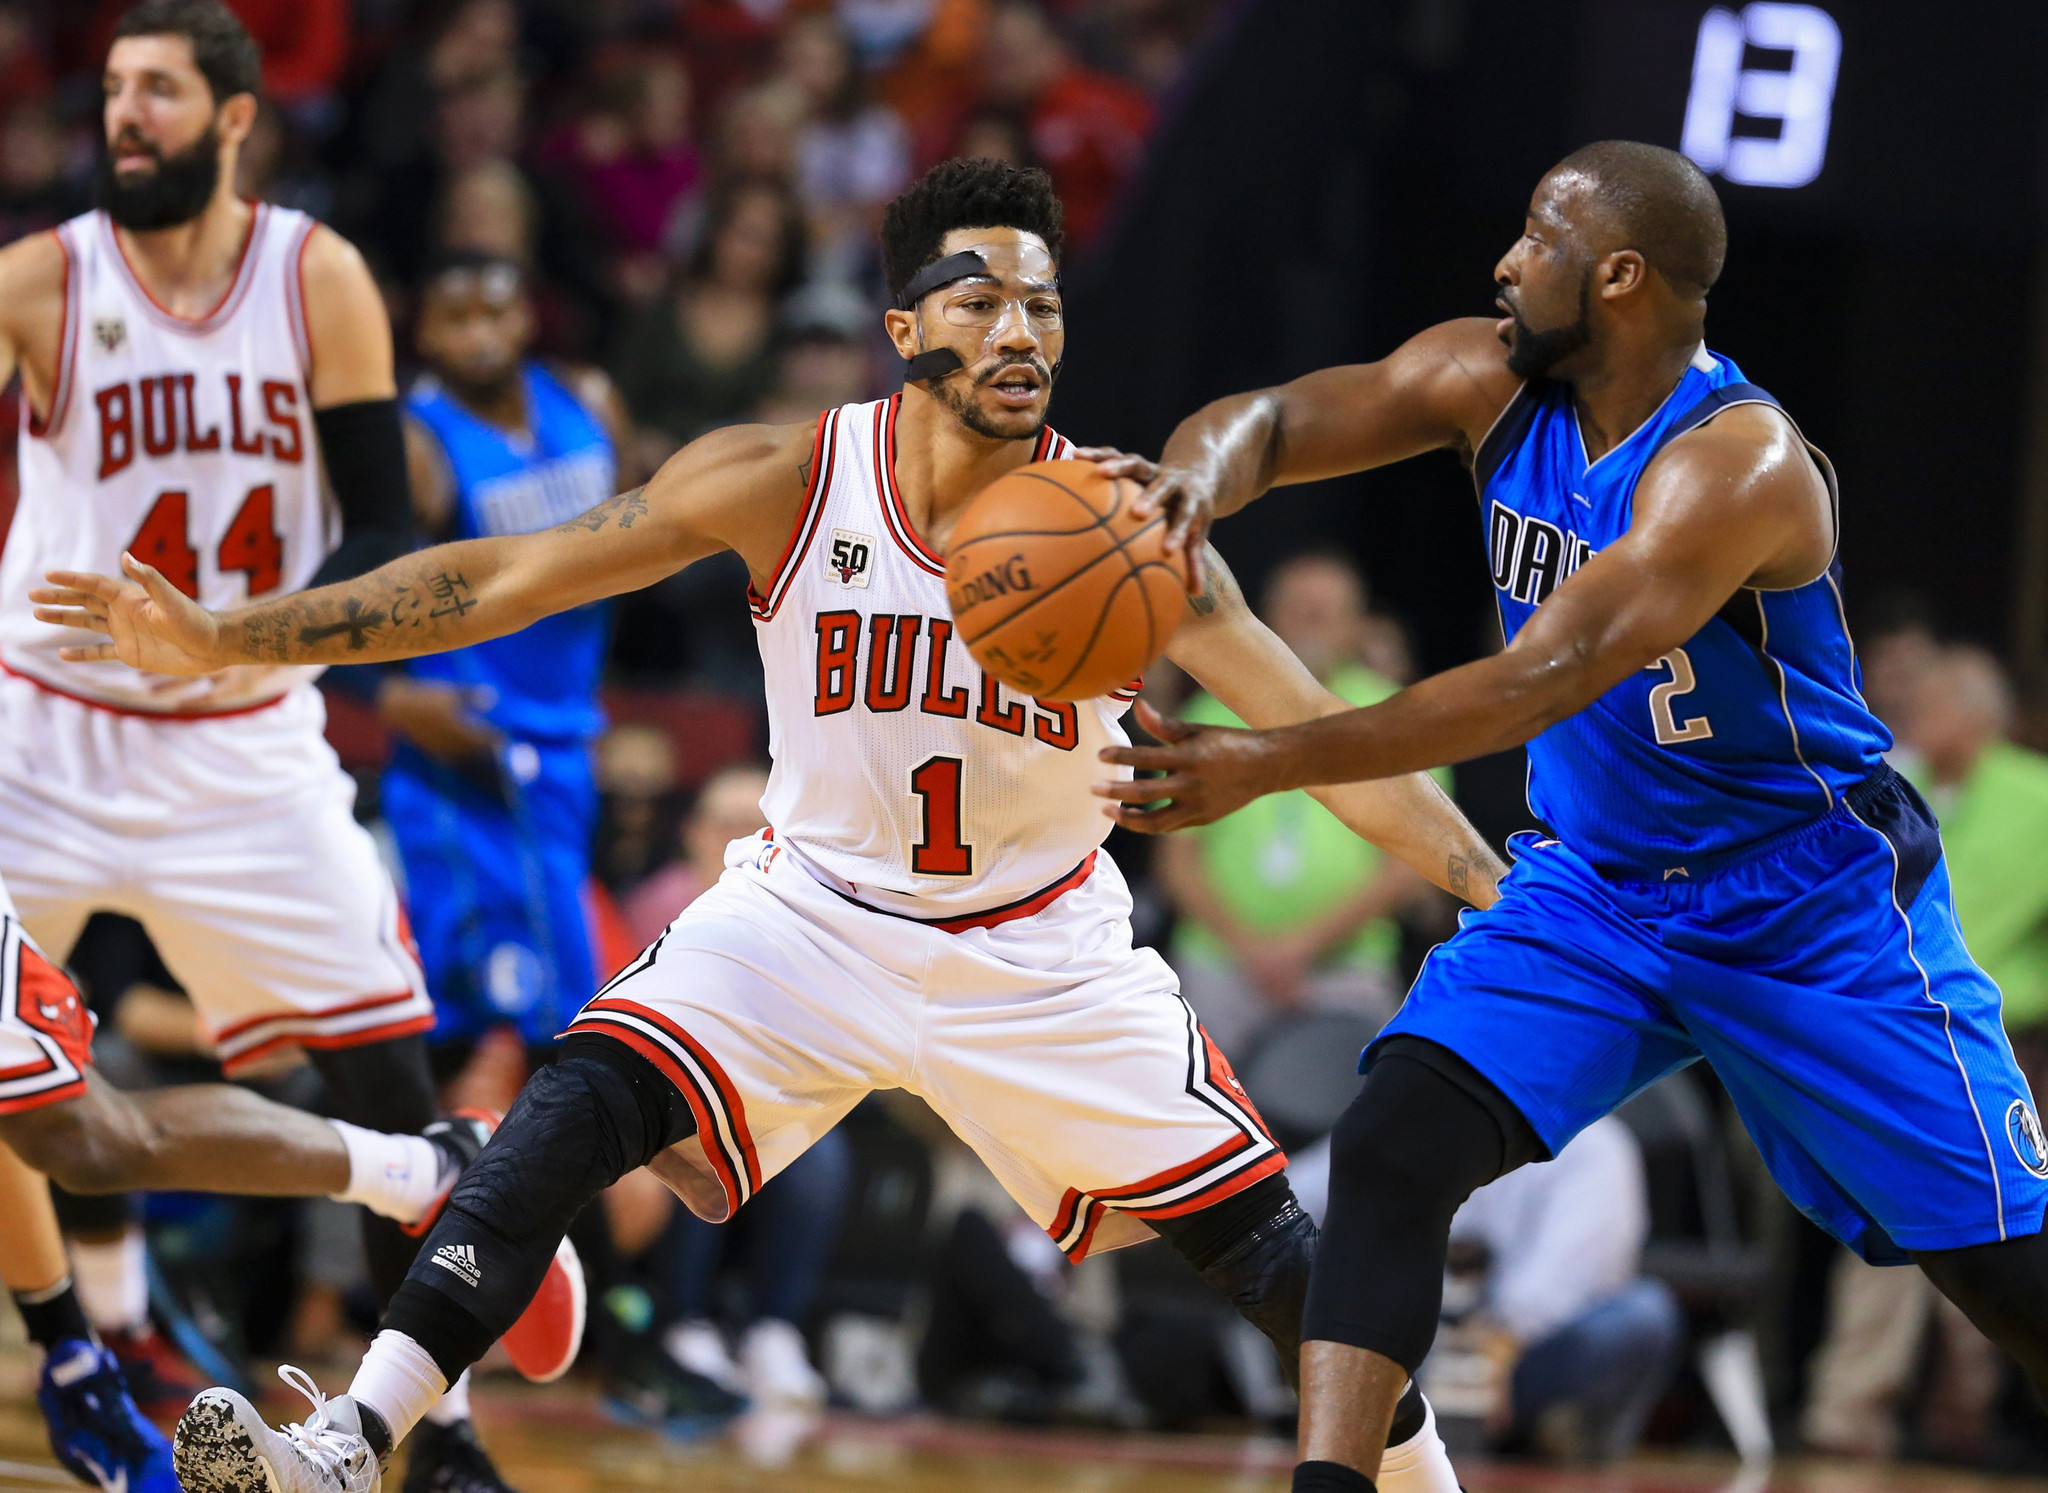 ca5b77246521 Bulls  Derrick Rose to start opener vs. Cavs - Chicago Tribune